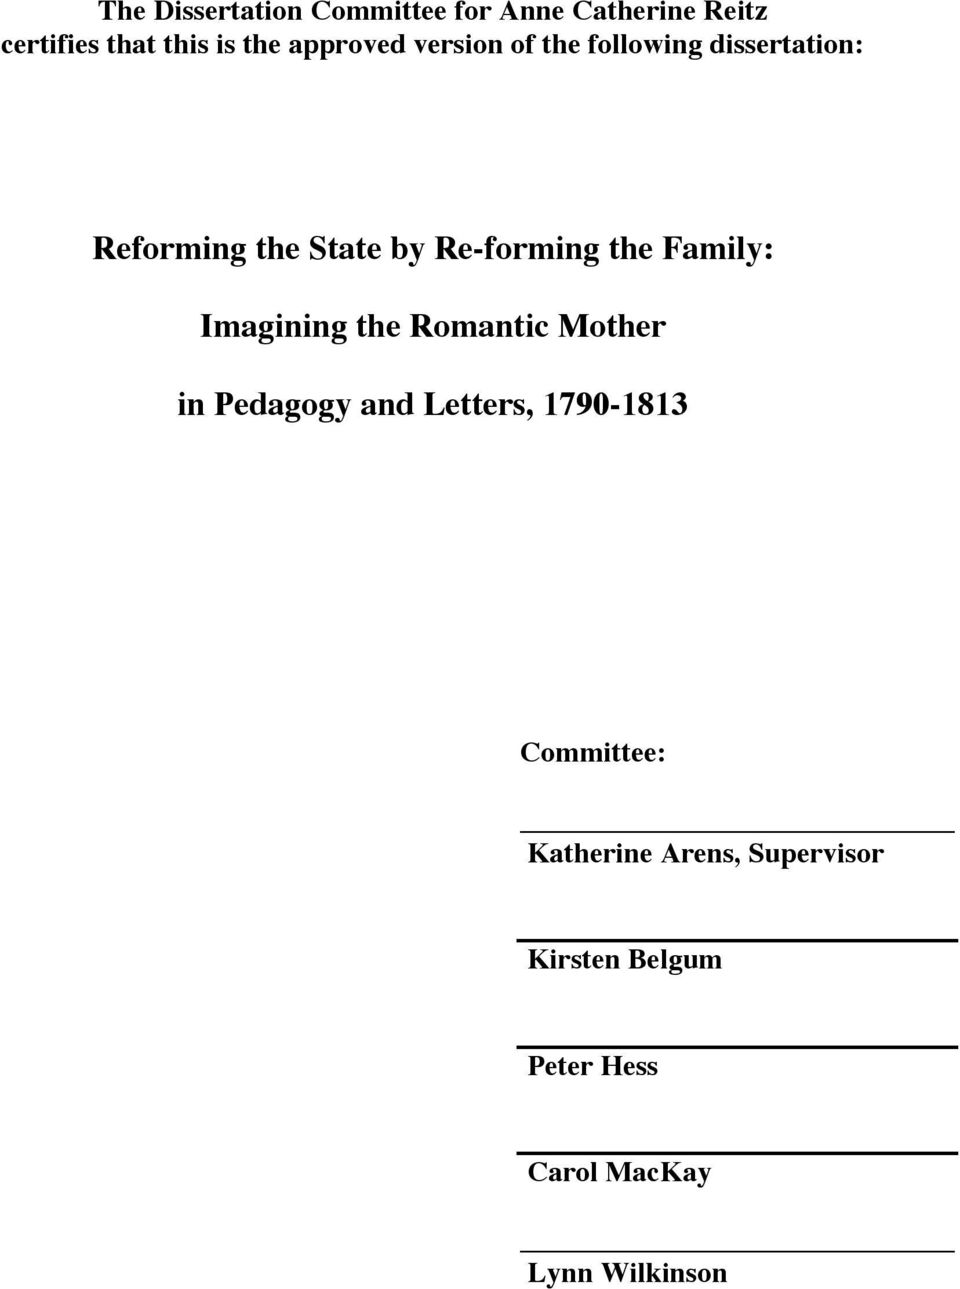 the Family: Imagining the Romantic Mother in Pedagogy and Letters, 1790-1813